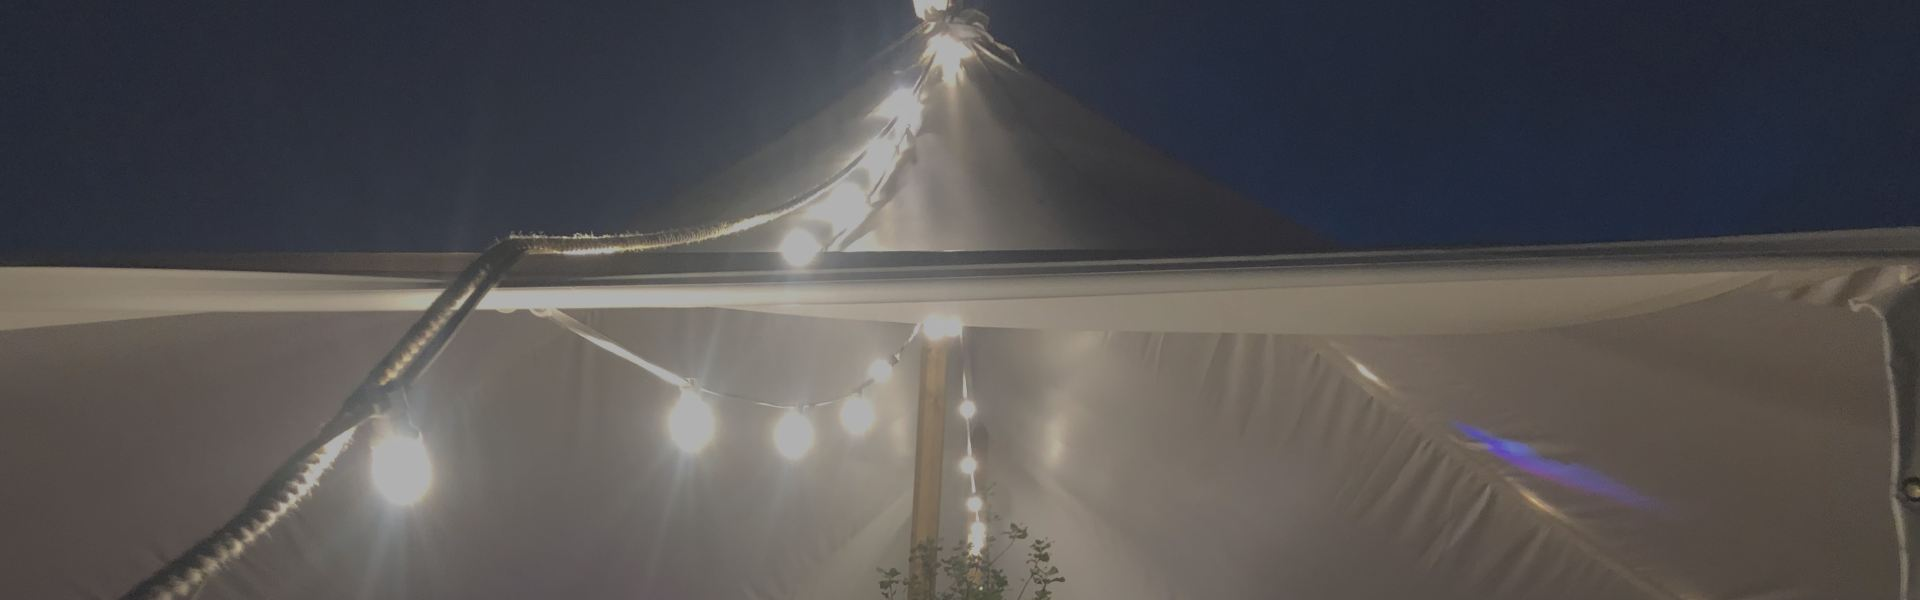 marquee hire with pole tent marquees ideal for weddings